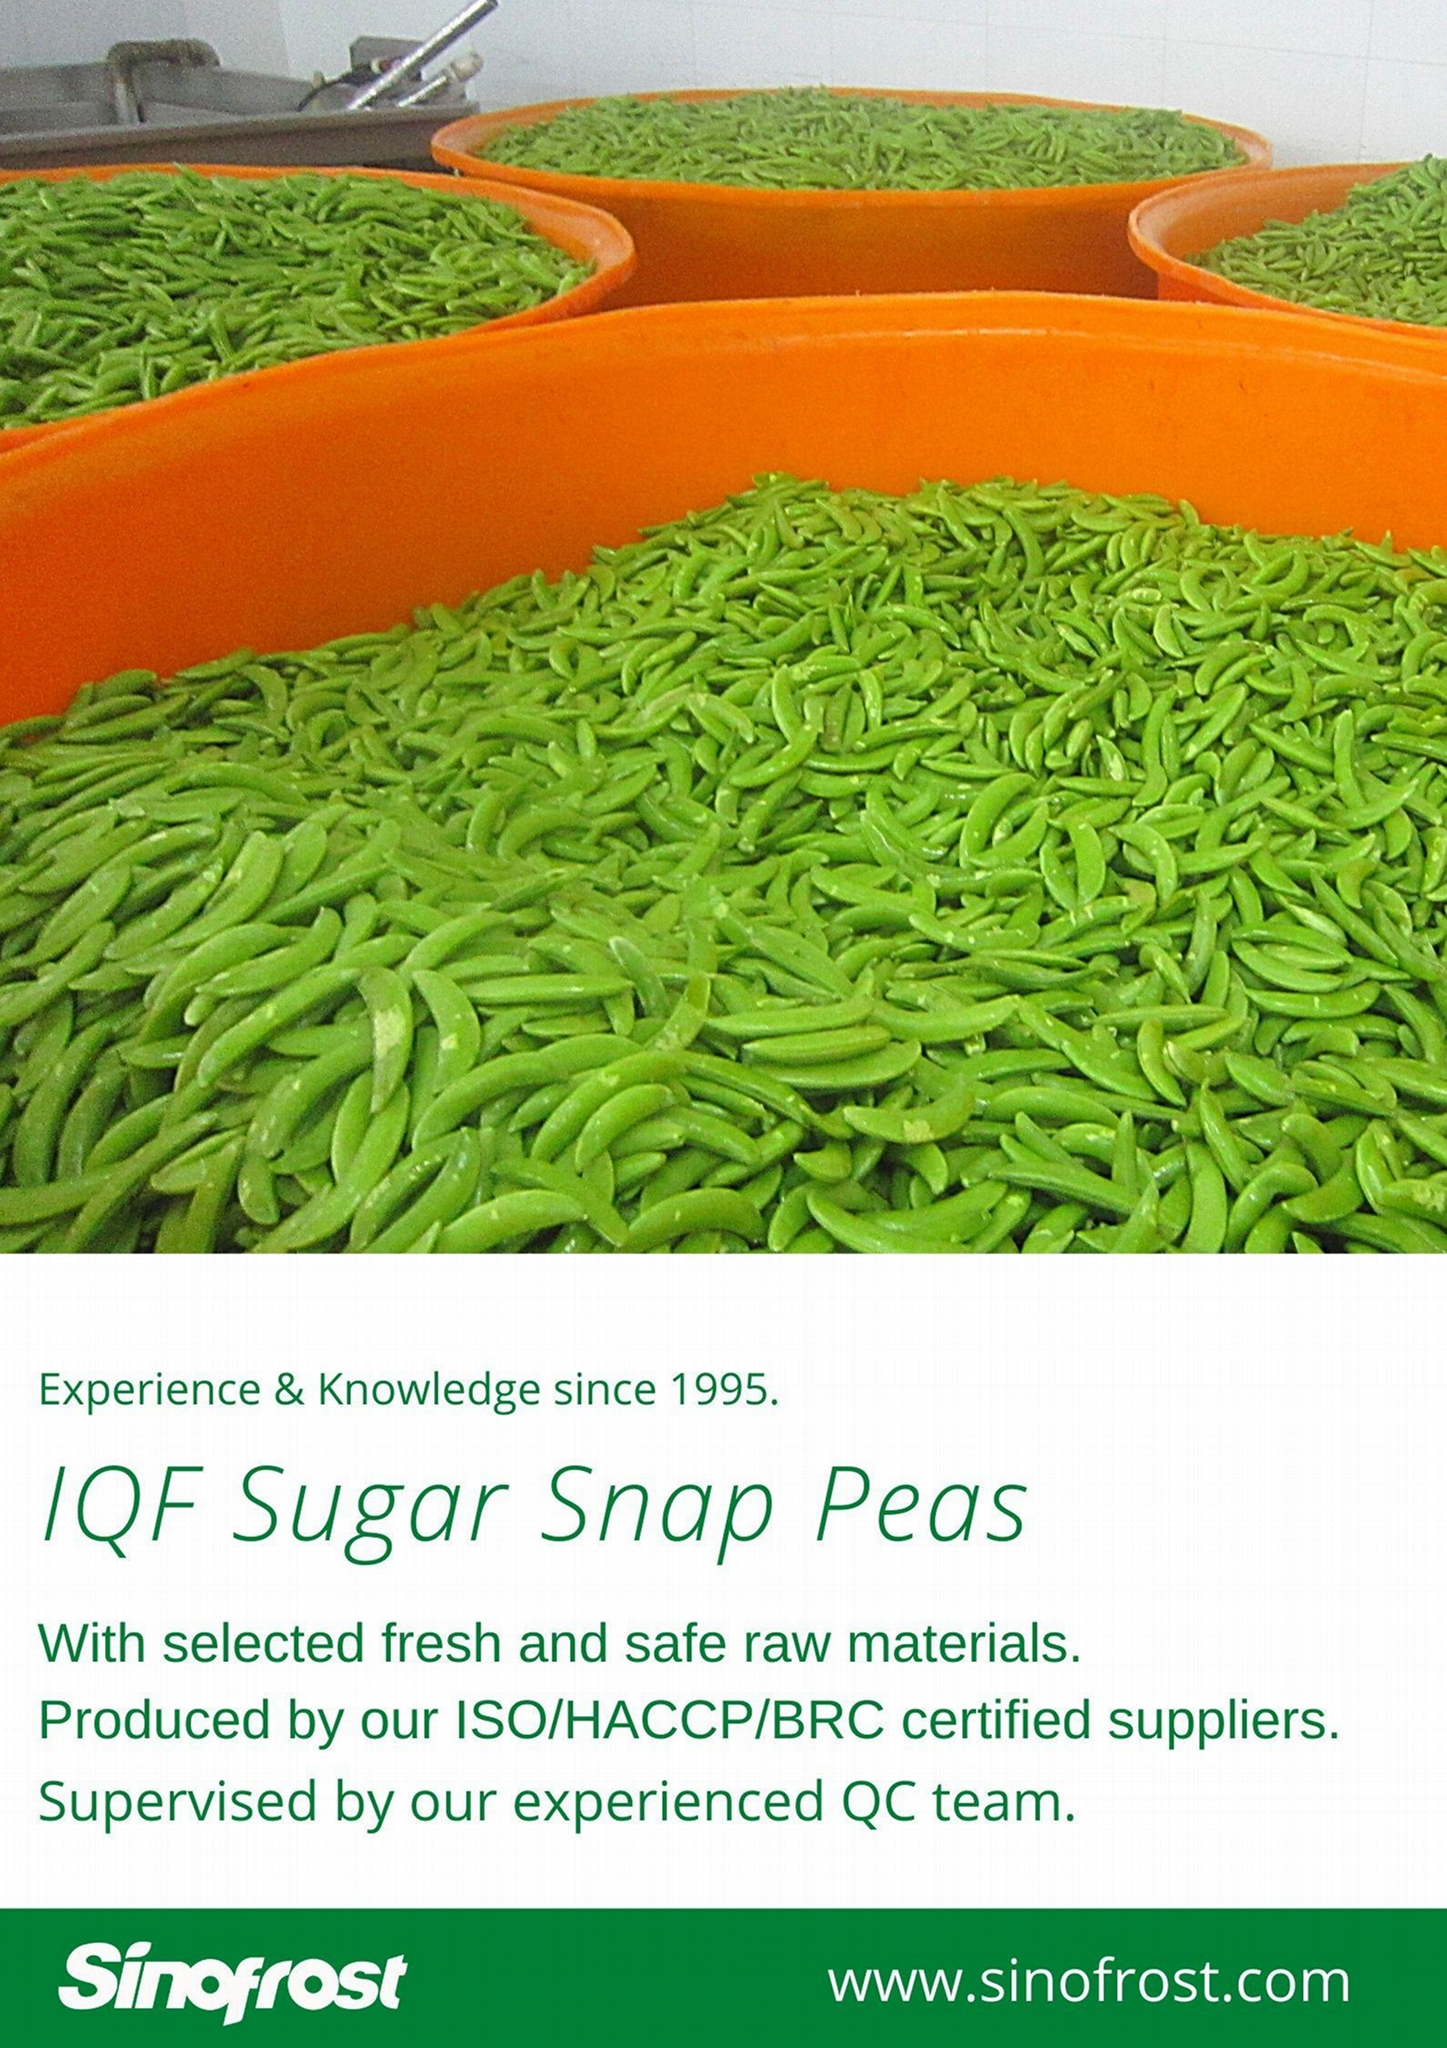 IQF Sugar Snap Peas,Frozen Sugar Snap Peas 13